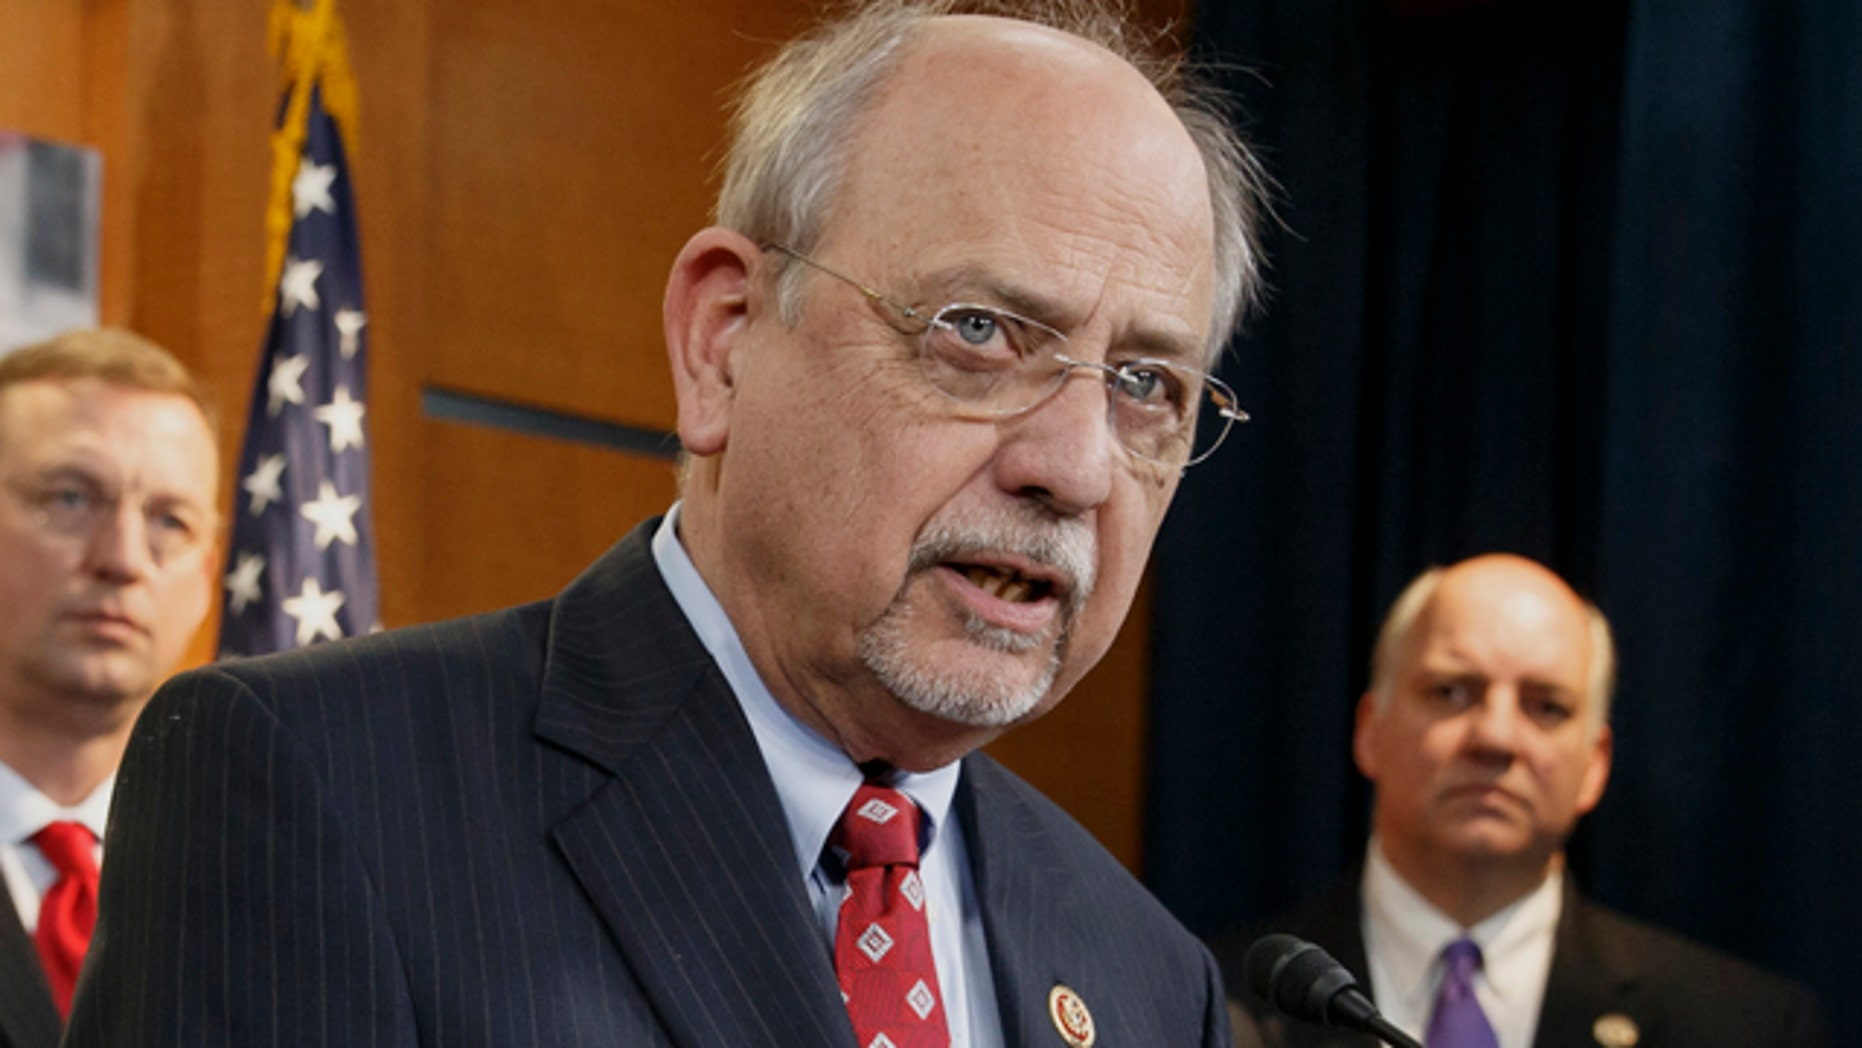 FILE - This Feb. 4, 2014 file photo shows Rep. Norman 'Doc' Hastings, R-Wash., during a news conference at the Capitol in Washington. (AP Photo/J. Scott Applewhite, file)